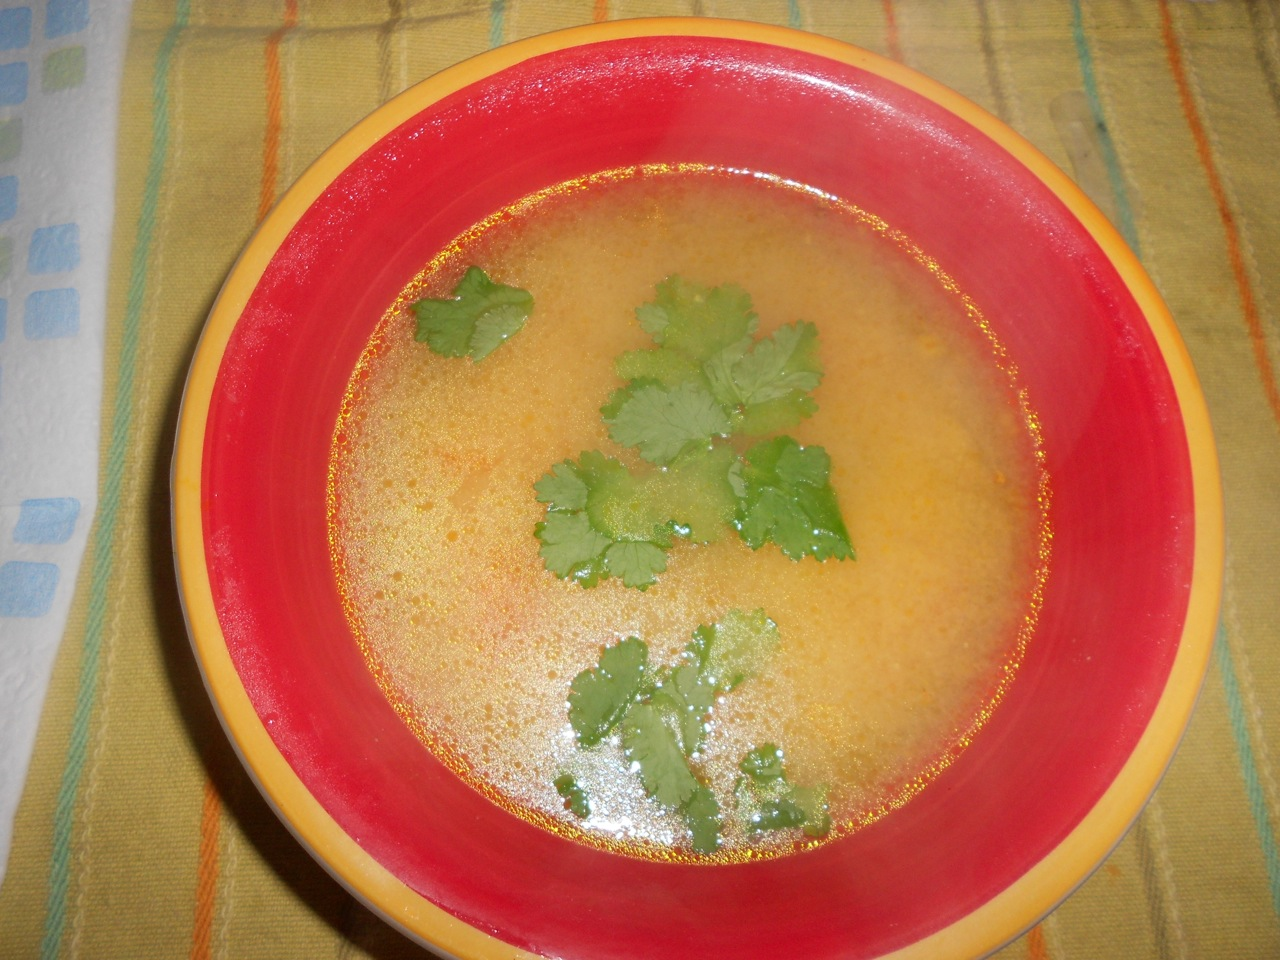 The finished soup.